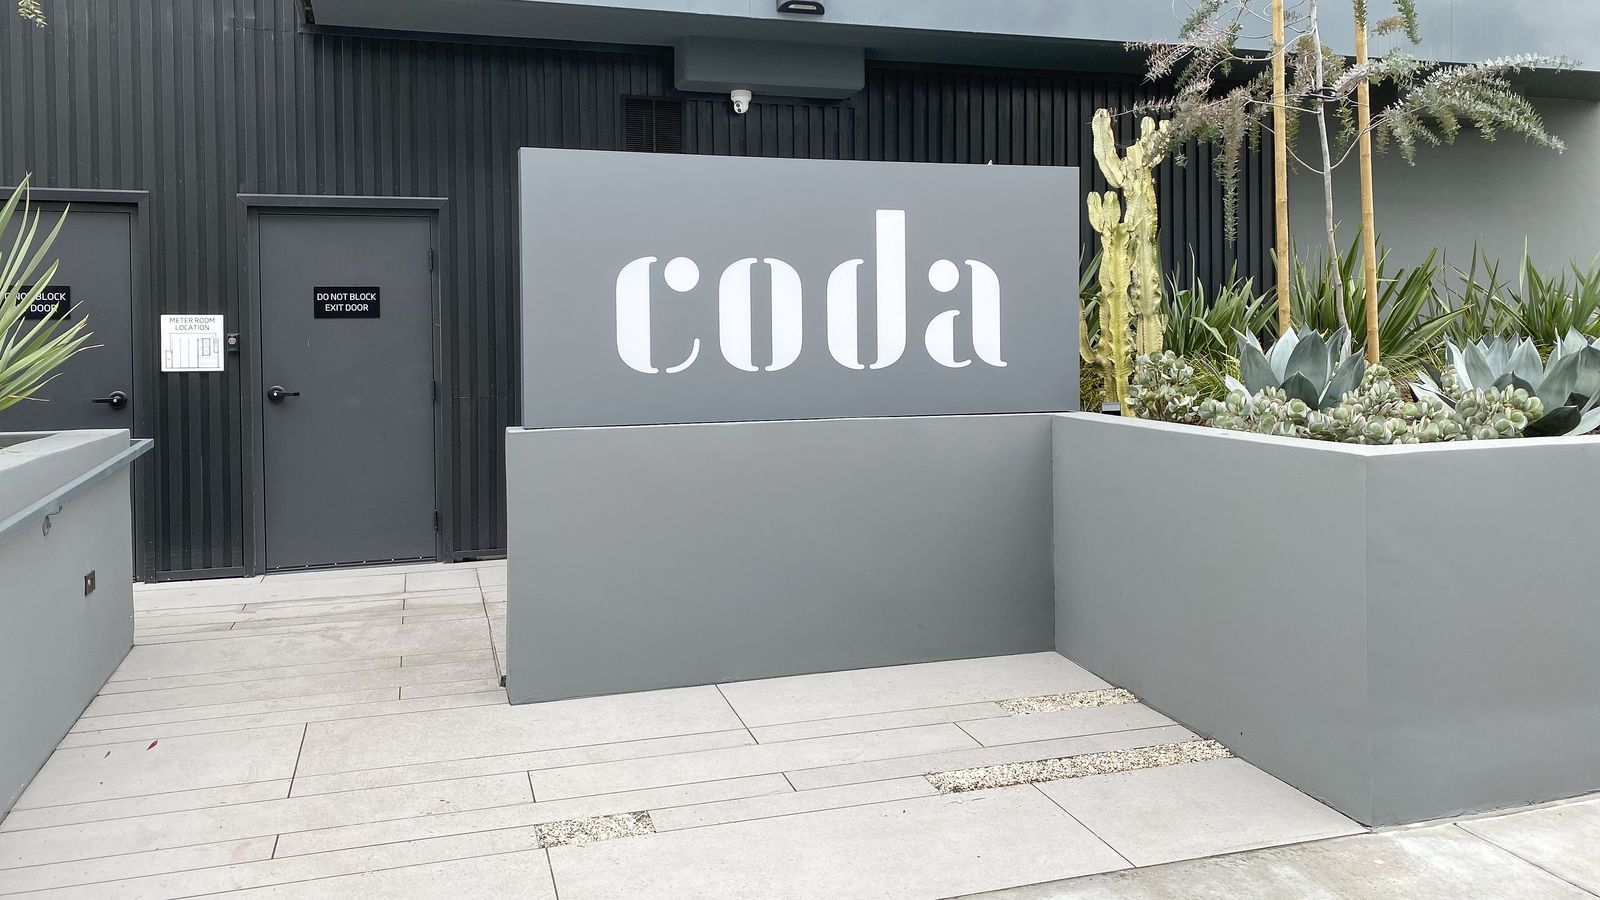 Coda illuminated sign